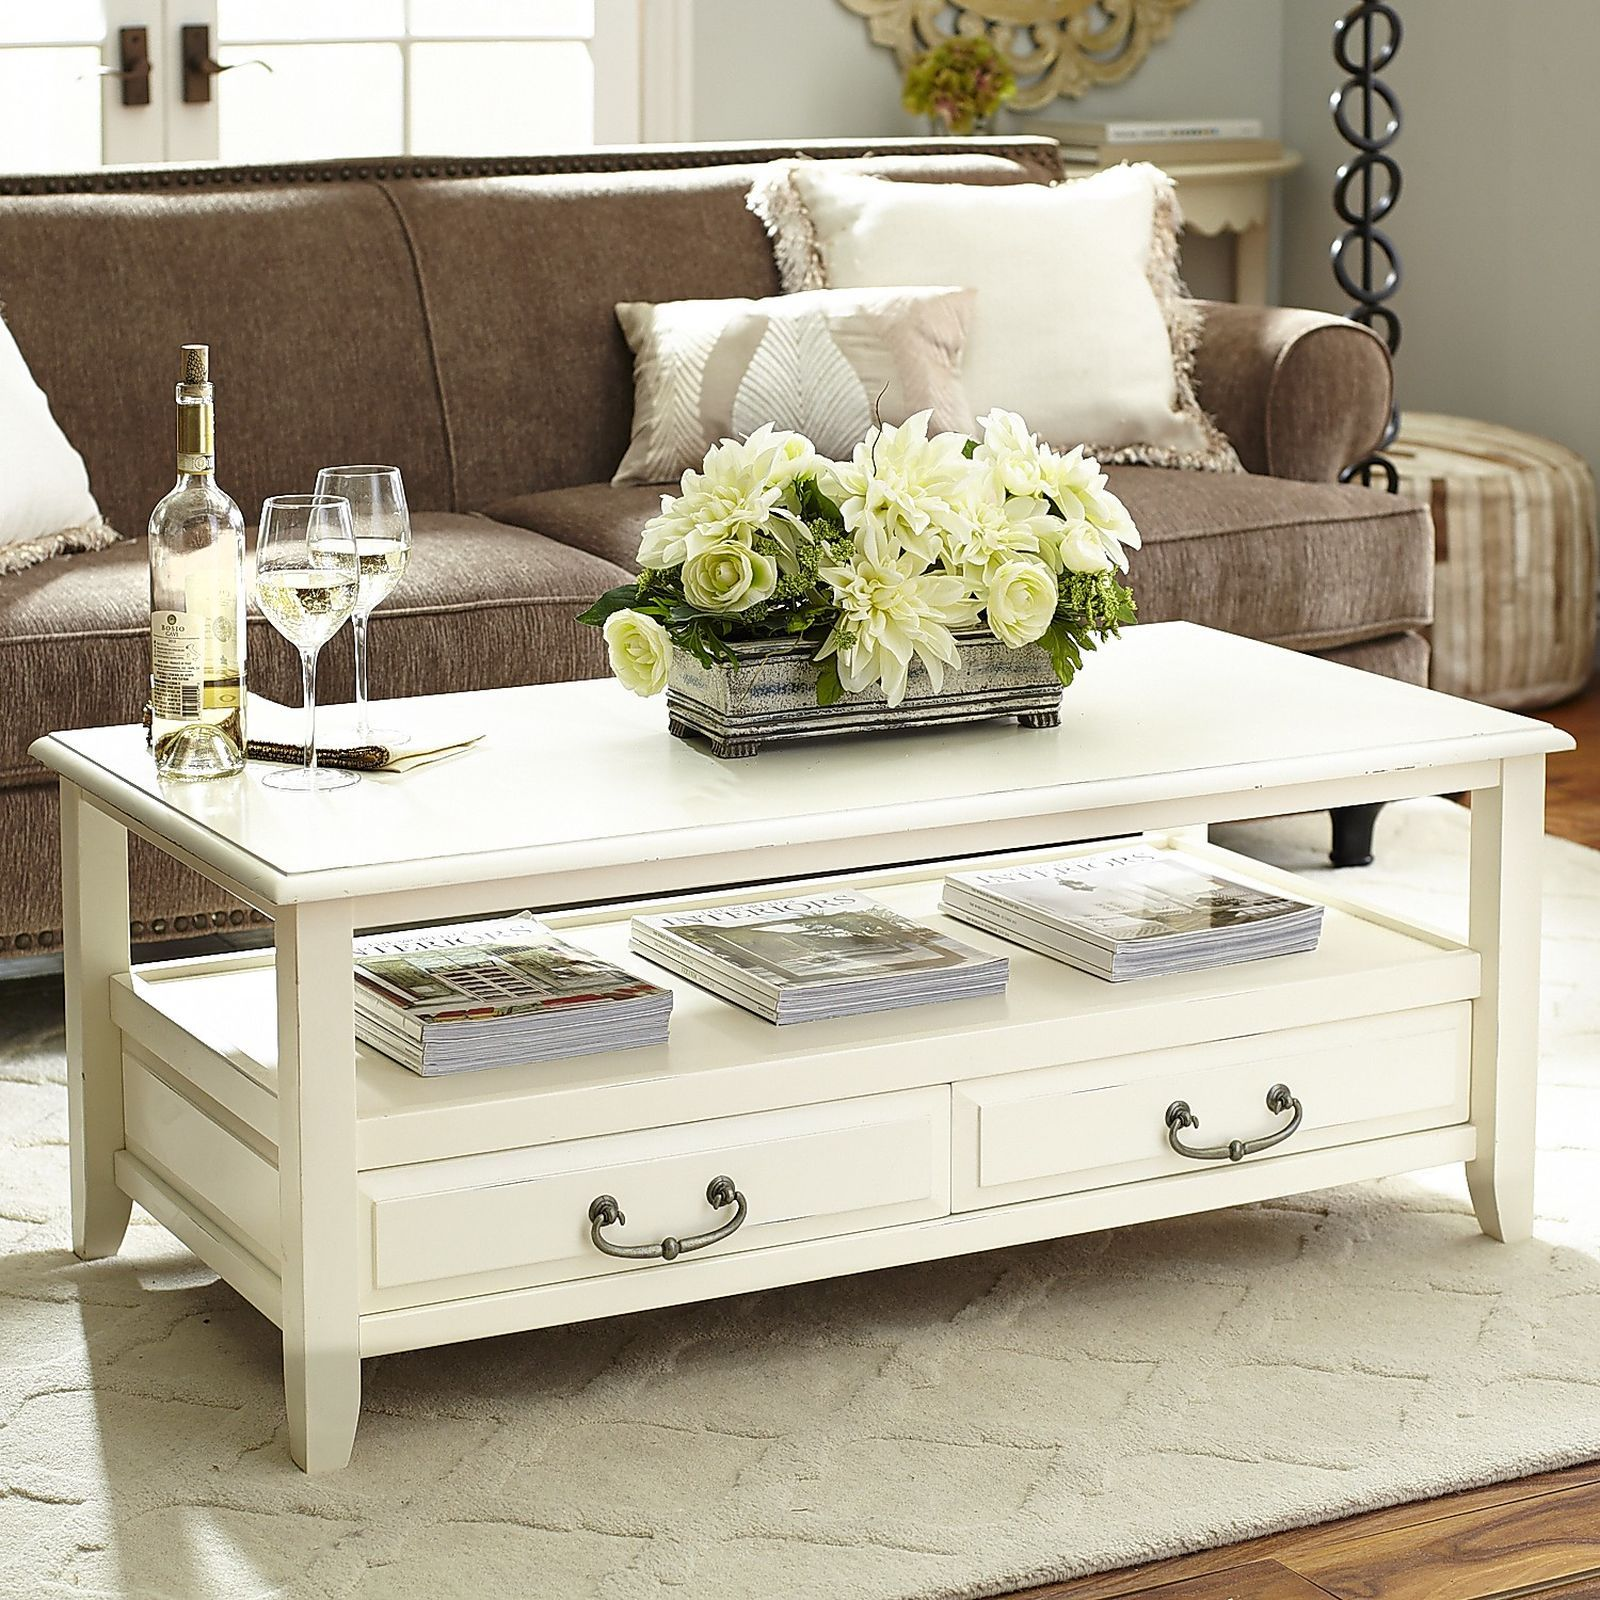 Anywhere Antique White Coffee Table With Pull Handles Pier 1